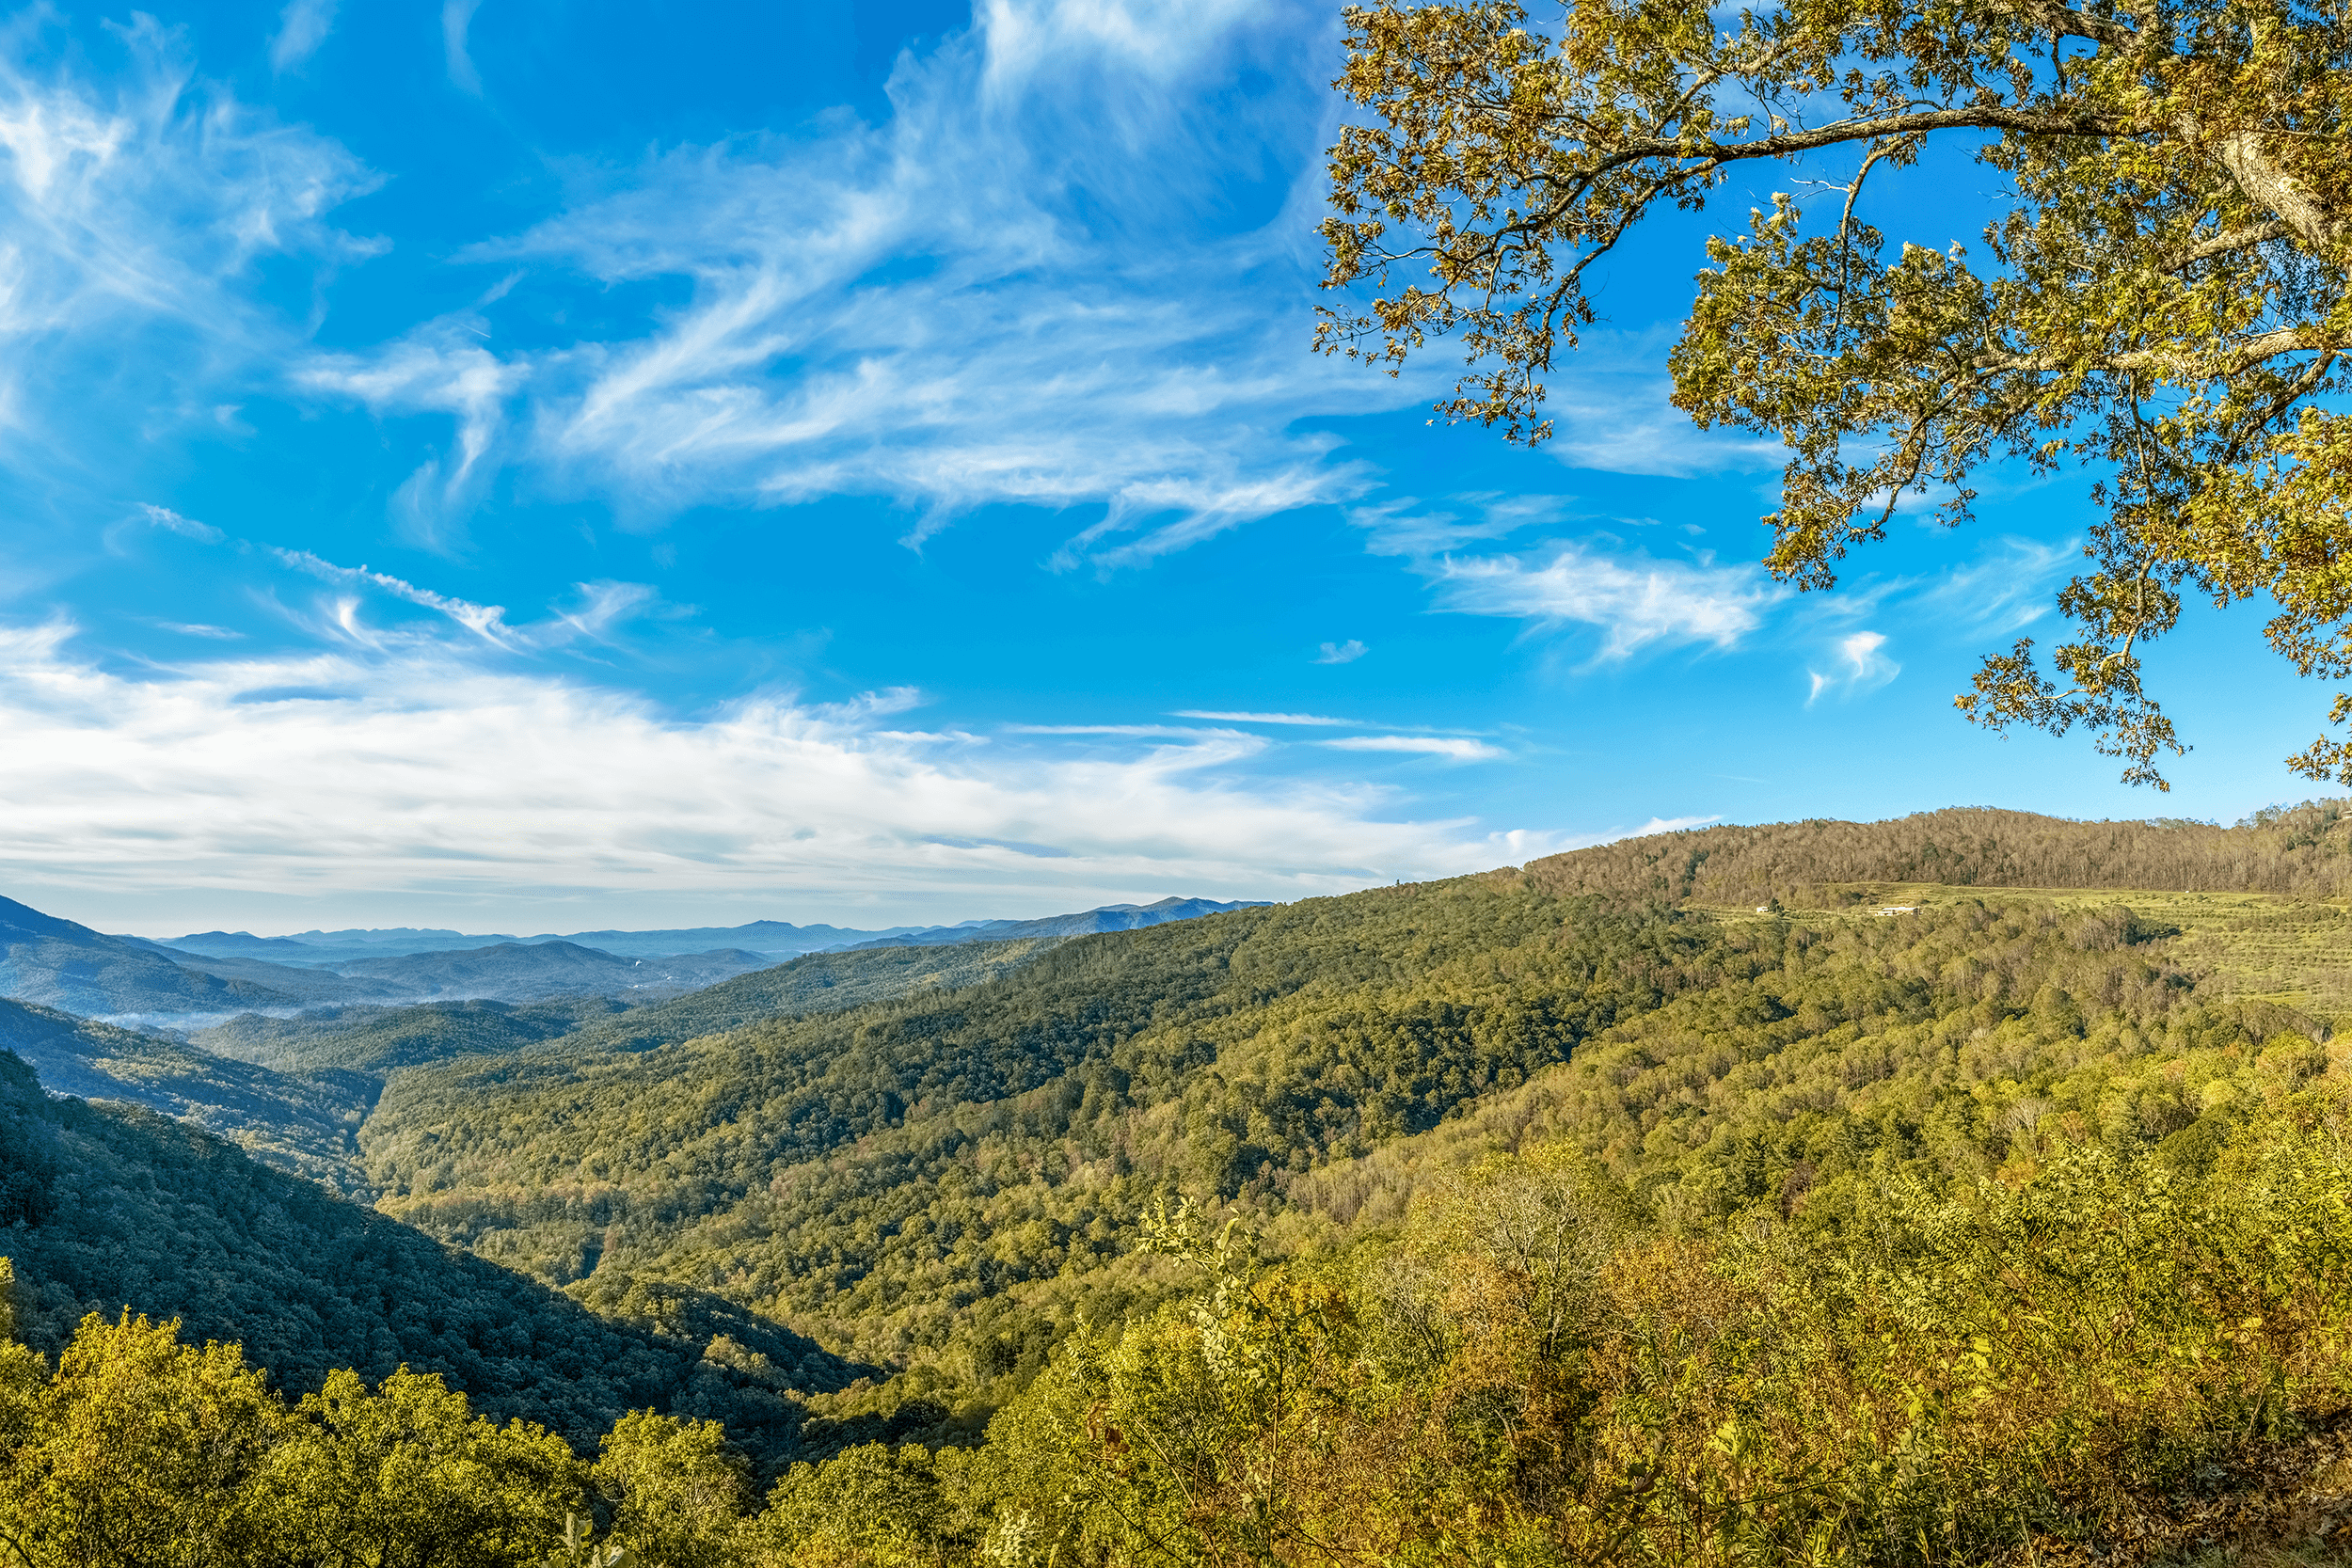 From an elevation of 2,815 feet (858 meters), the  North Cove Overlook  offers long-range views down  Pepper Creek Valley . The view is towards North Cove NC, which lies 3 miles (5 km) away, and for which the overlook was named. The  North Cove Overlook  is situated above a challenging 13-mile (21-km) railroad section that connects Spruce Pine NC with Marion NC through multiple loops and 18 railroad tunnels.